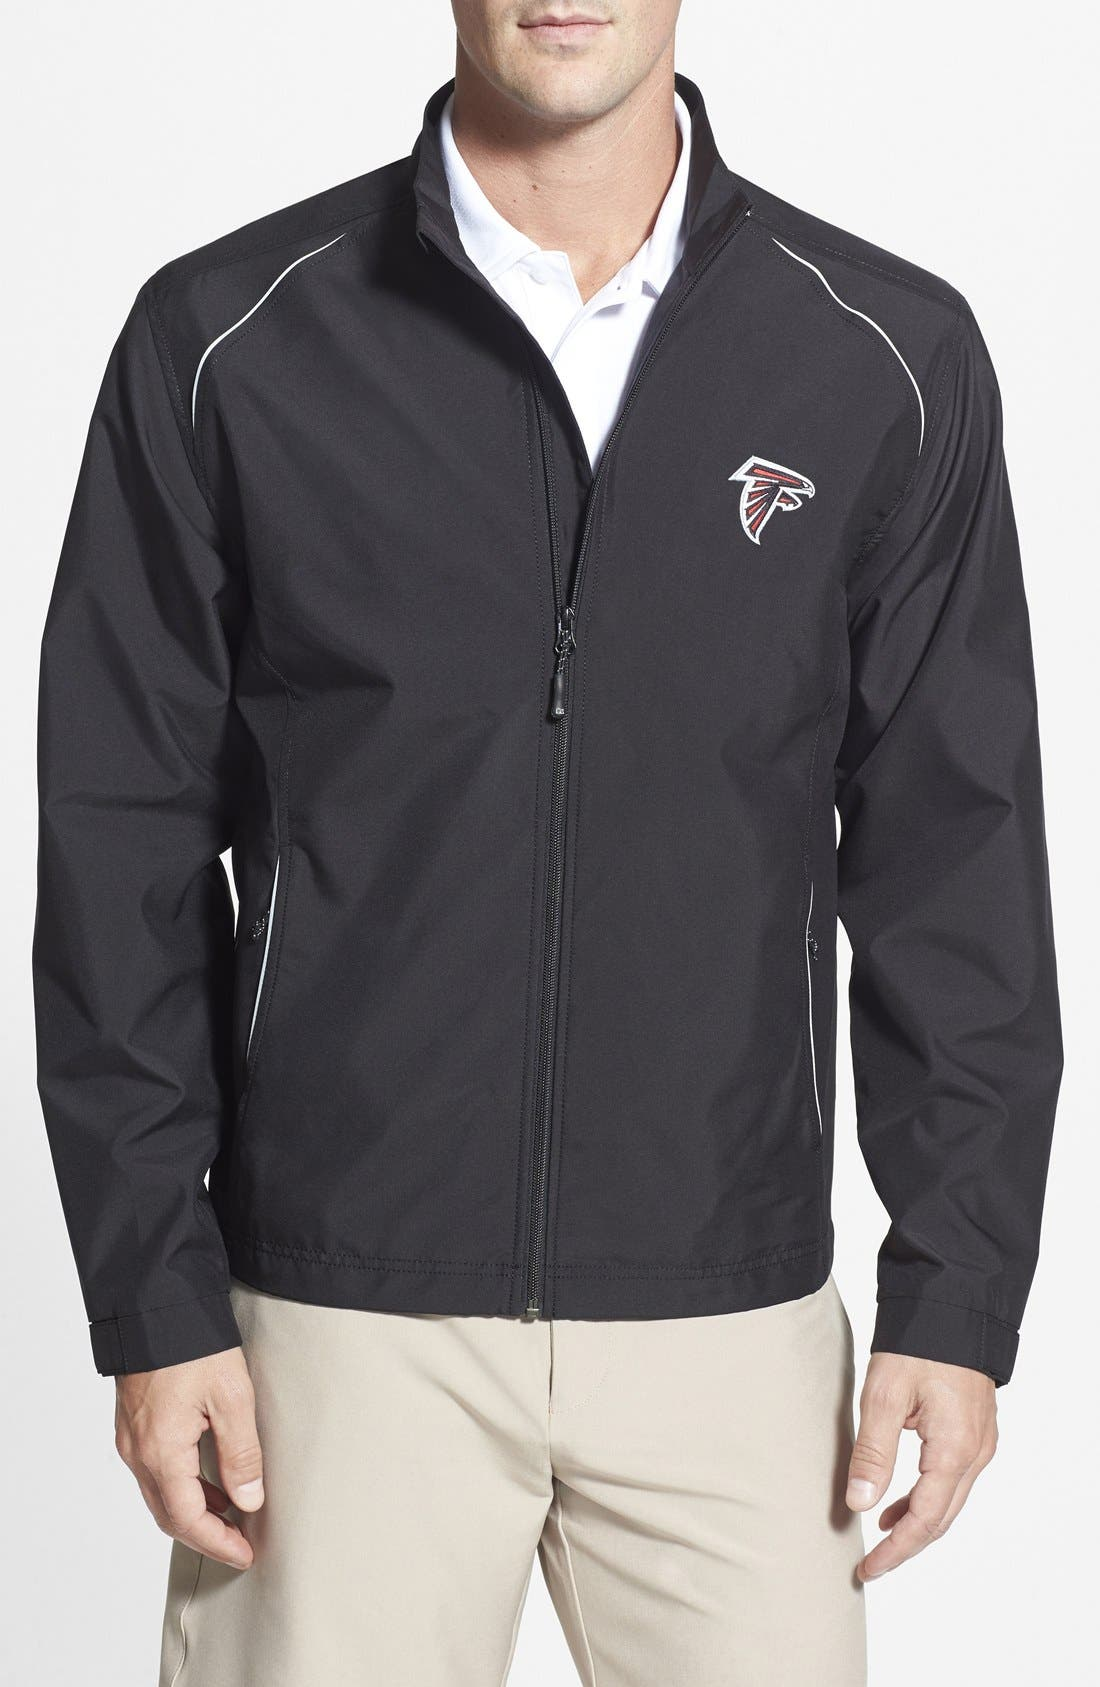 Atlanta Falcons - Beacon WeatherTec Wind & Water Resistant Jacket,                             Main thumbnail 1, color,                             Black